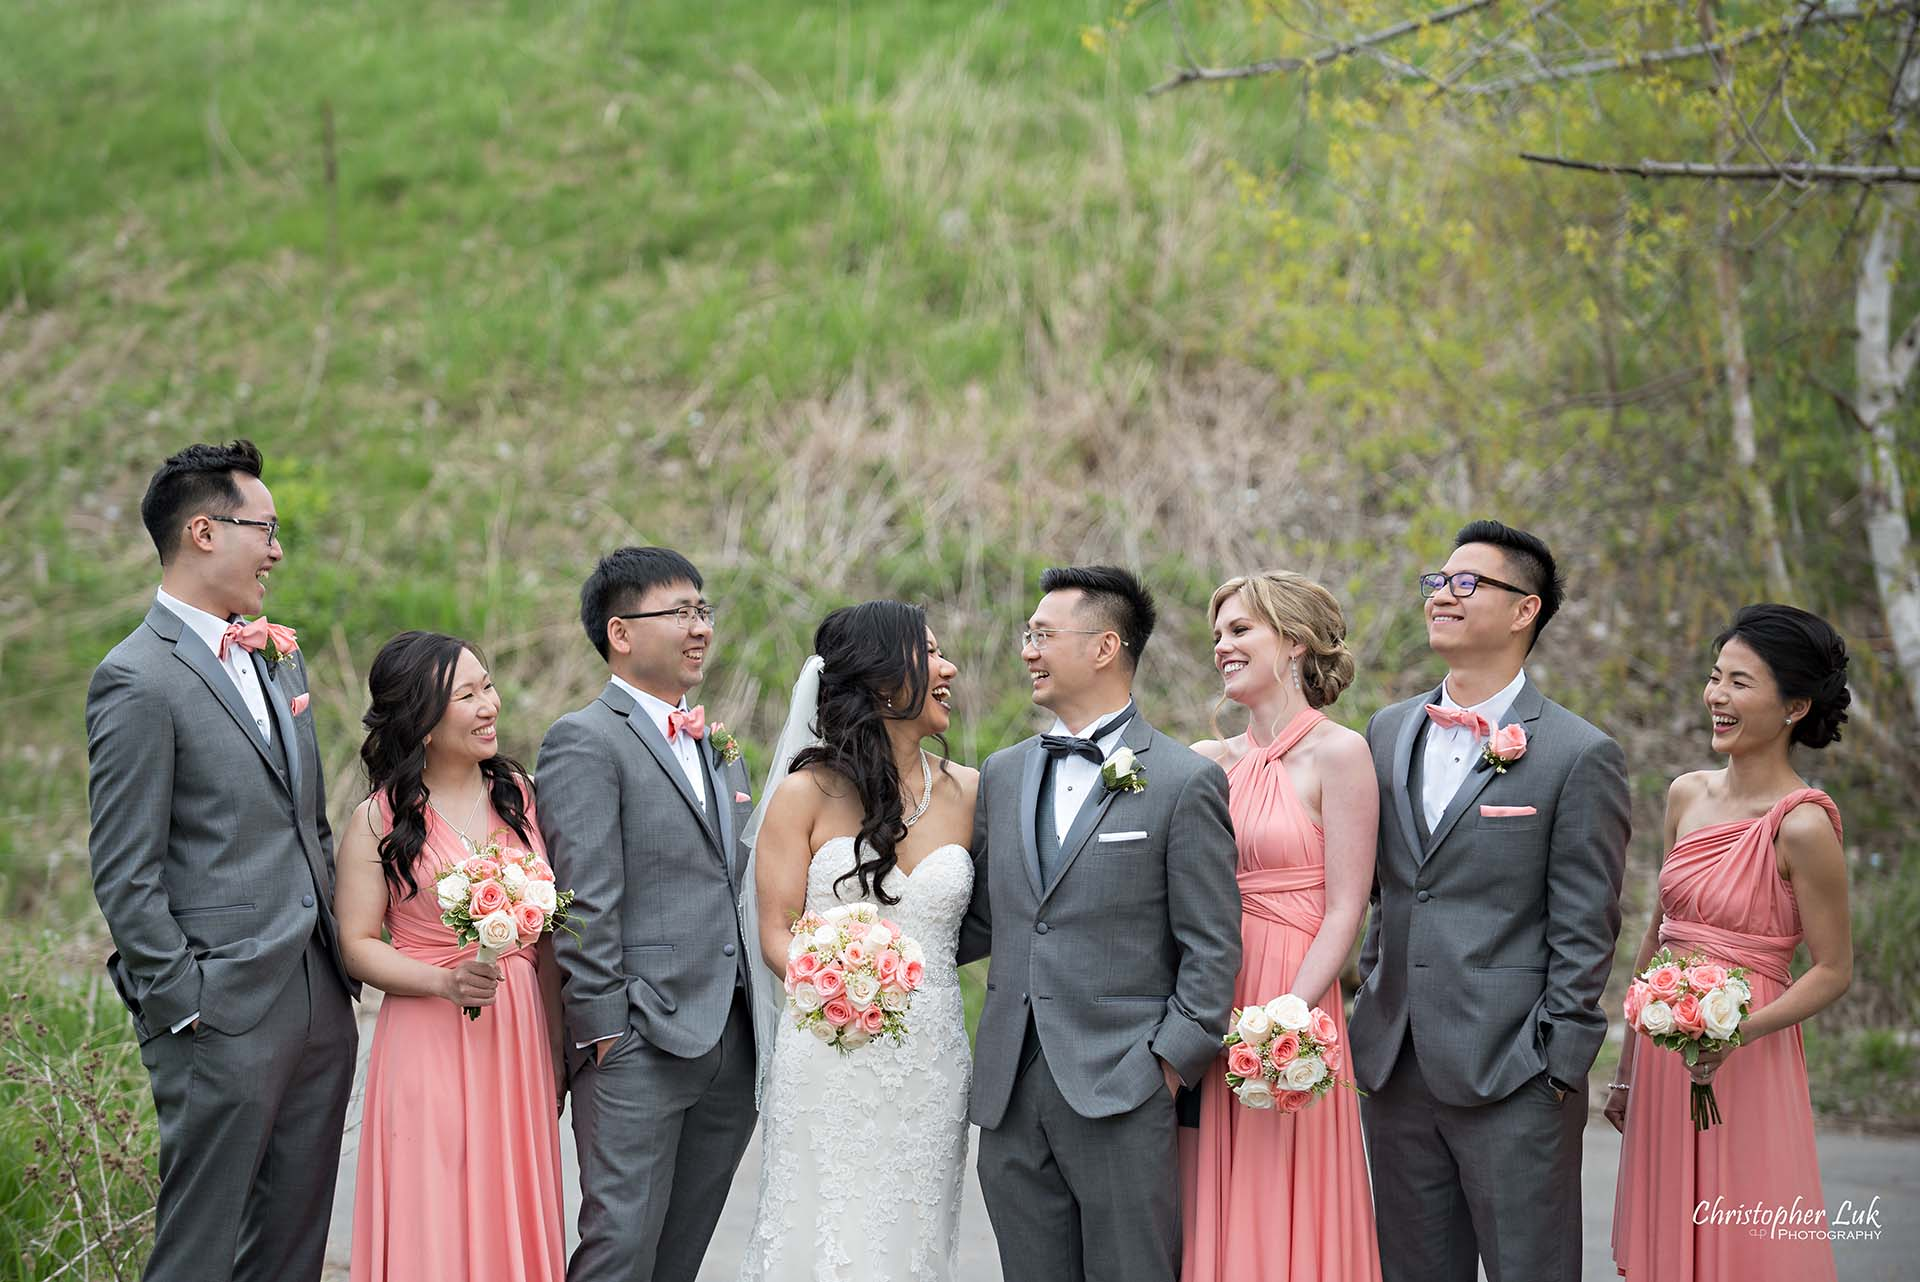 Christopher Luk Toronto Wedding Photographer Eagles Nest Golf Club Course Clubhouse Bride Groom Bridal Party Bridesmaids Groomsmen Candid Natural Photojournalistic Laughing Smile